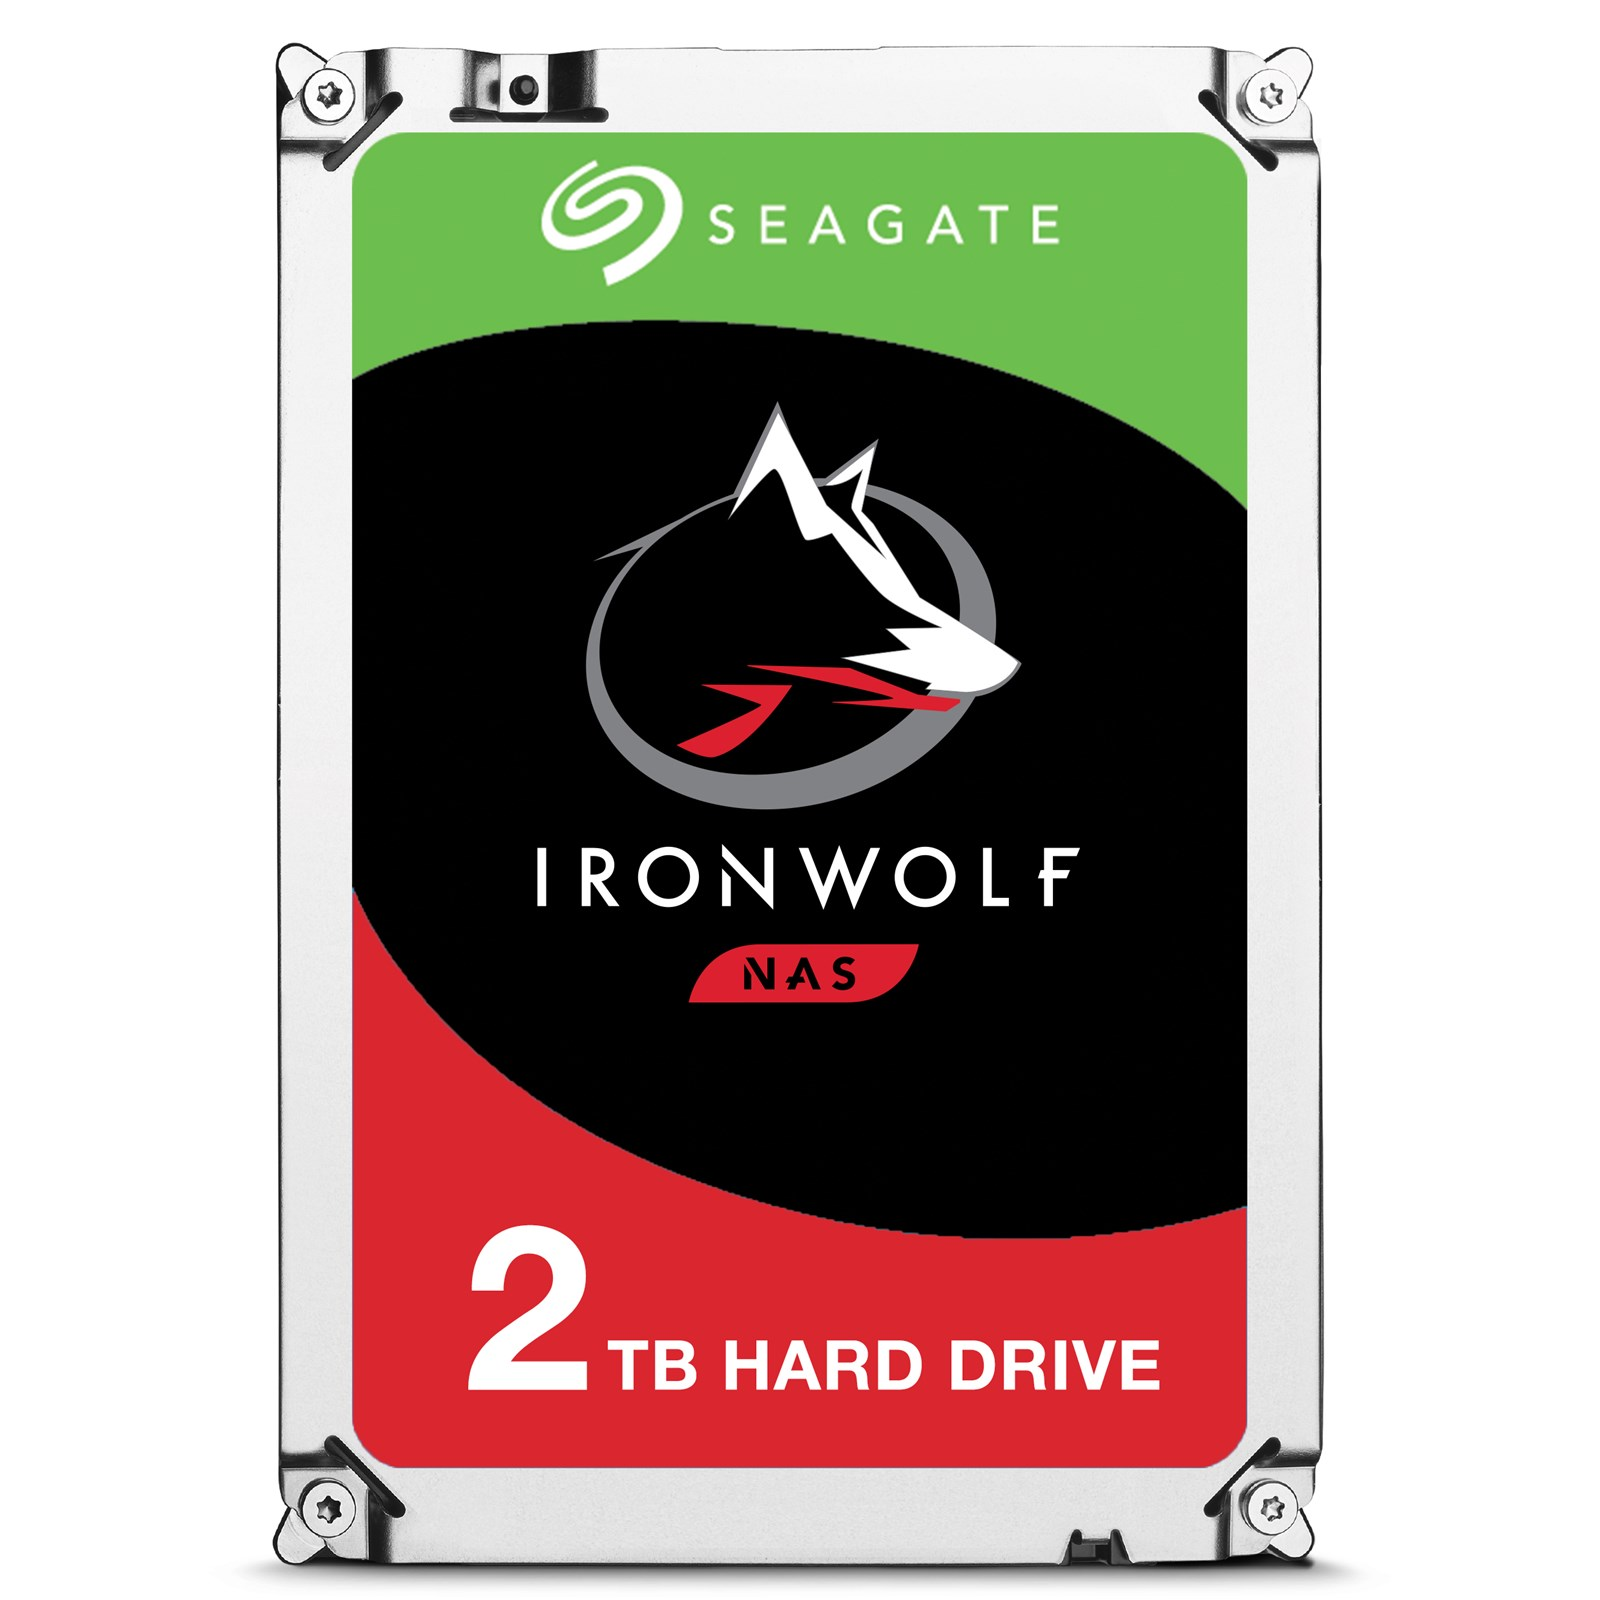 SEAGATE IRONWOLF 2TB 5900RPM 64MB SATA3 6Gbit/sn ST2000VN004 NAS HDD